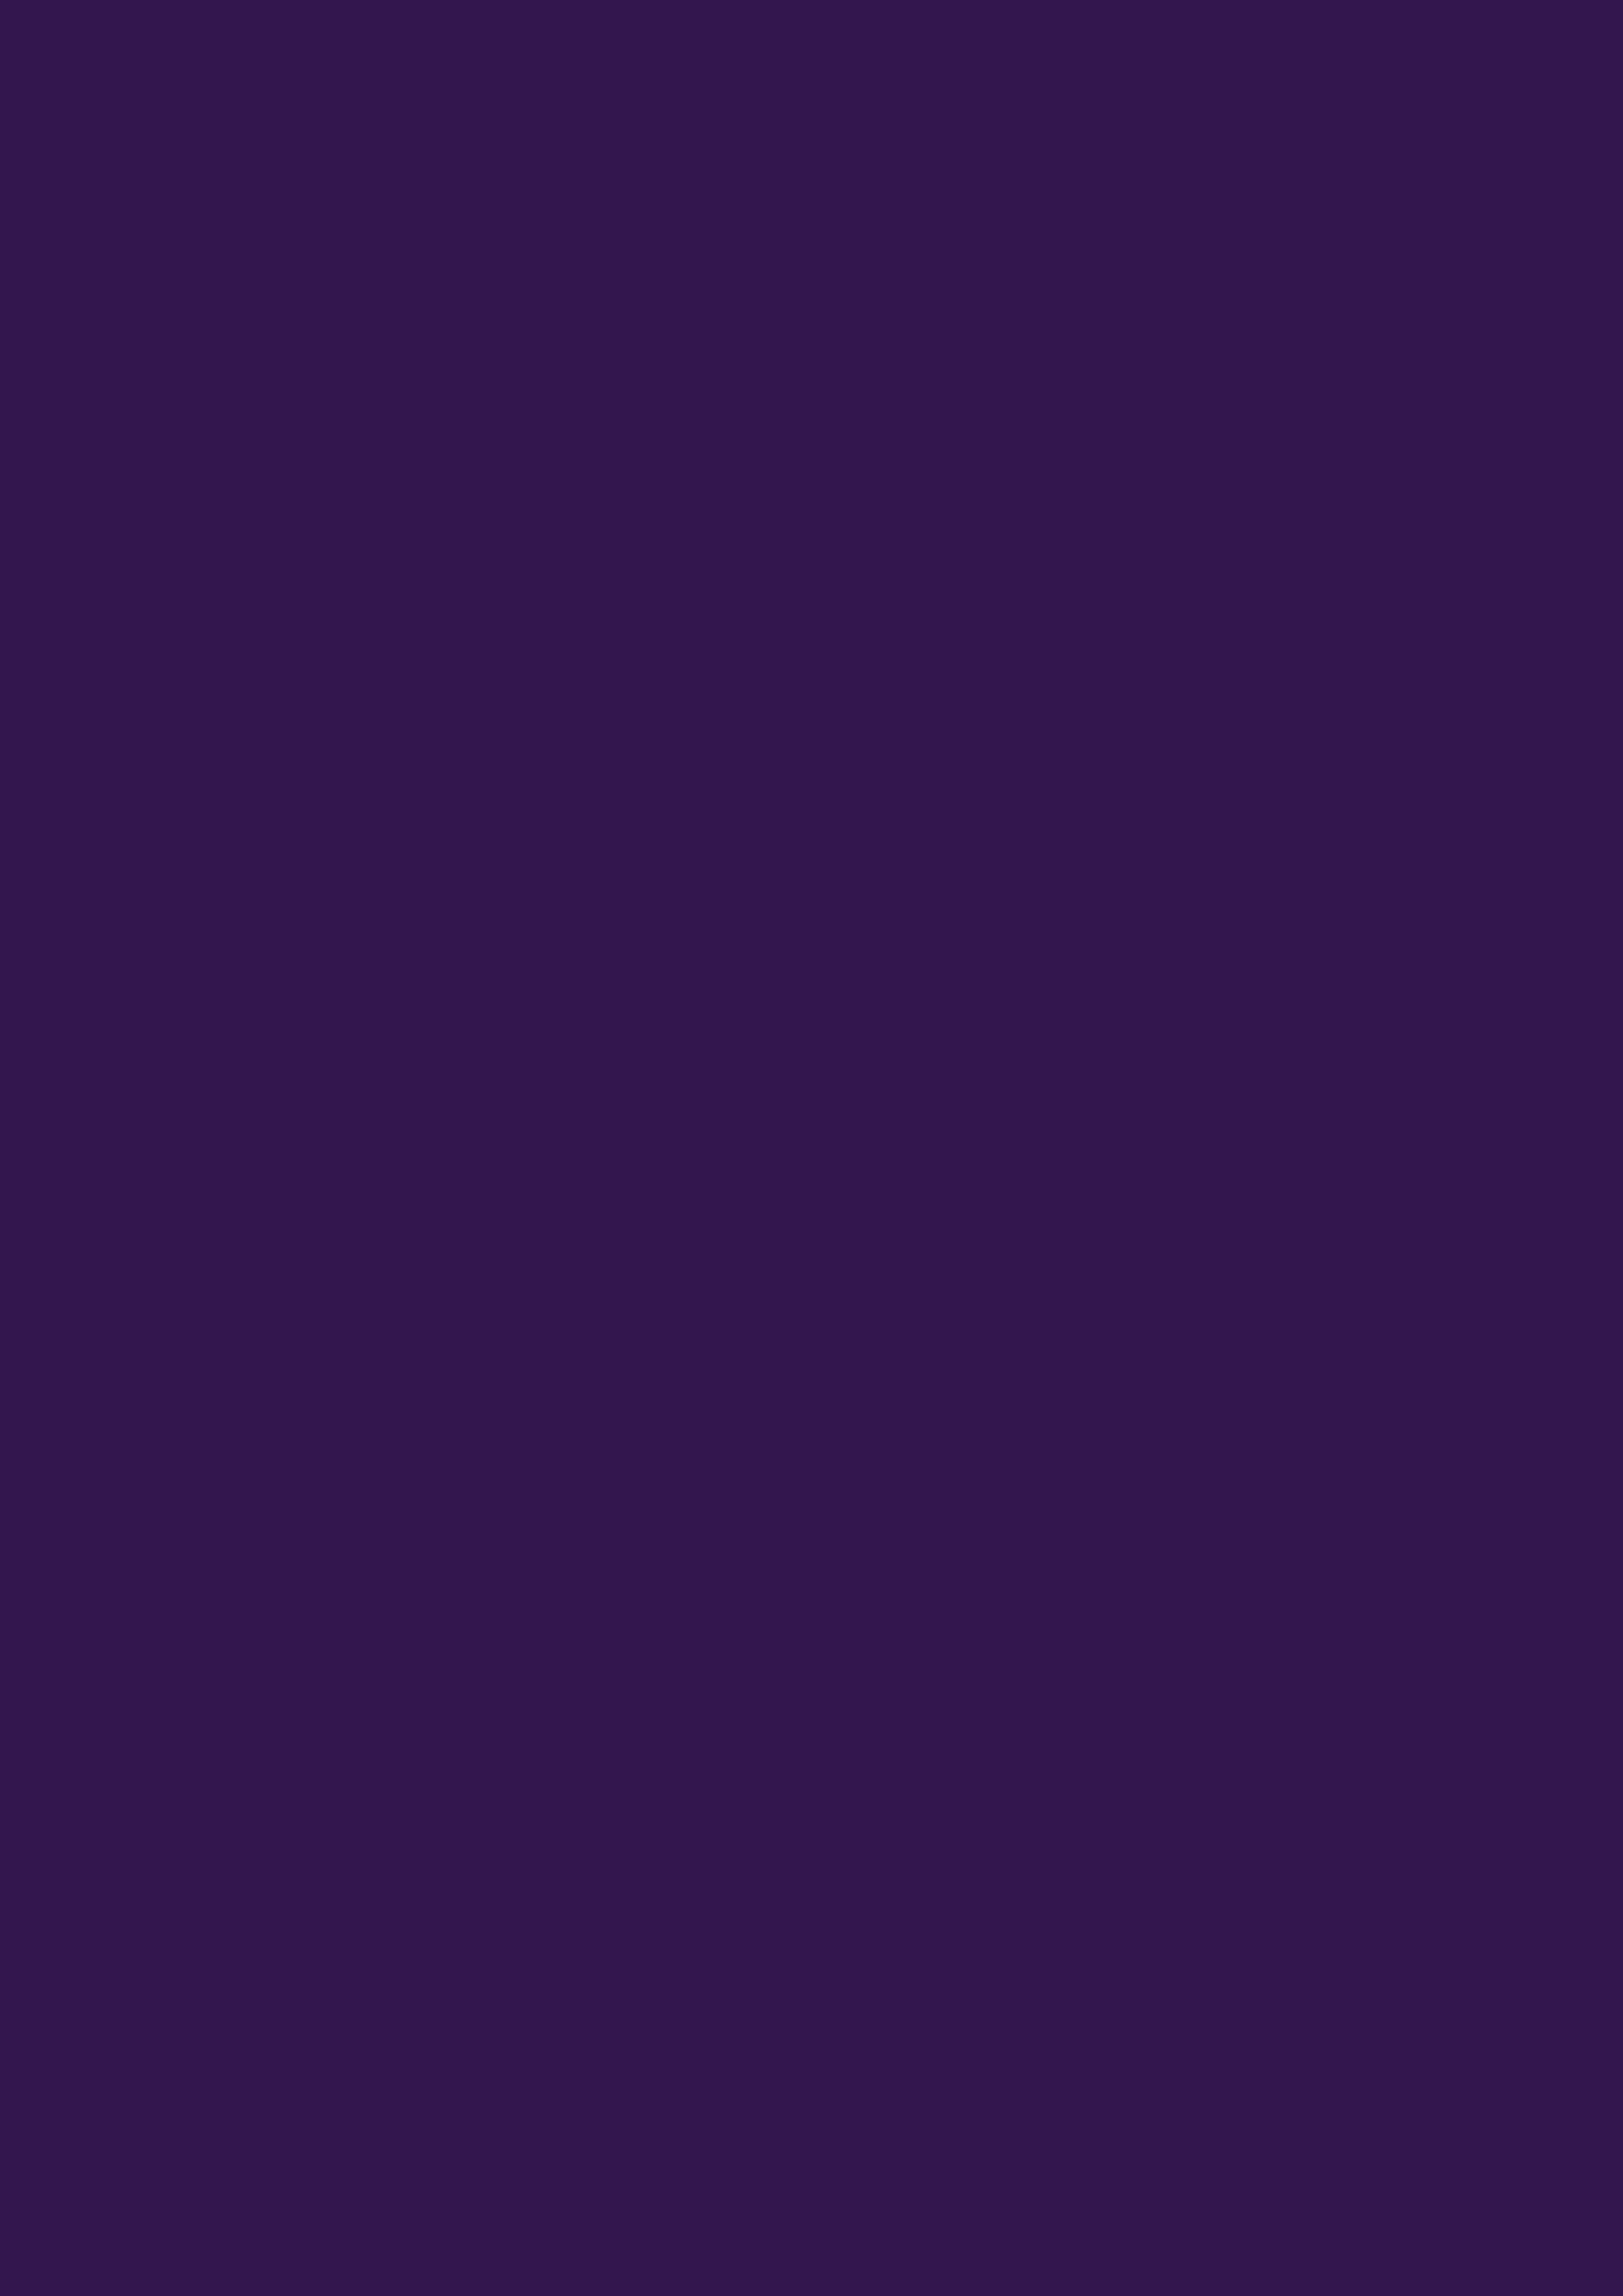 2480x3508 Russian Violet Solid Color Background